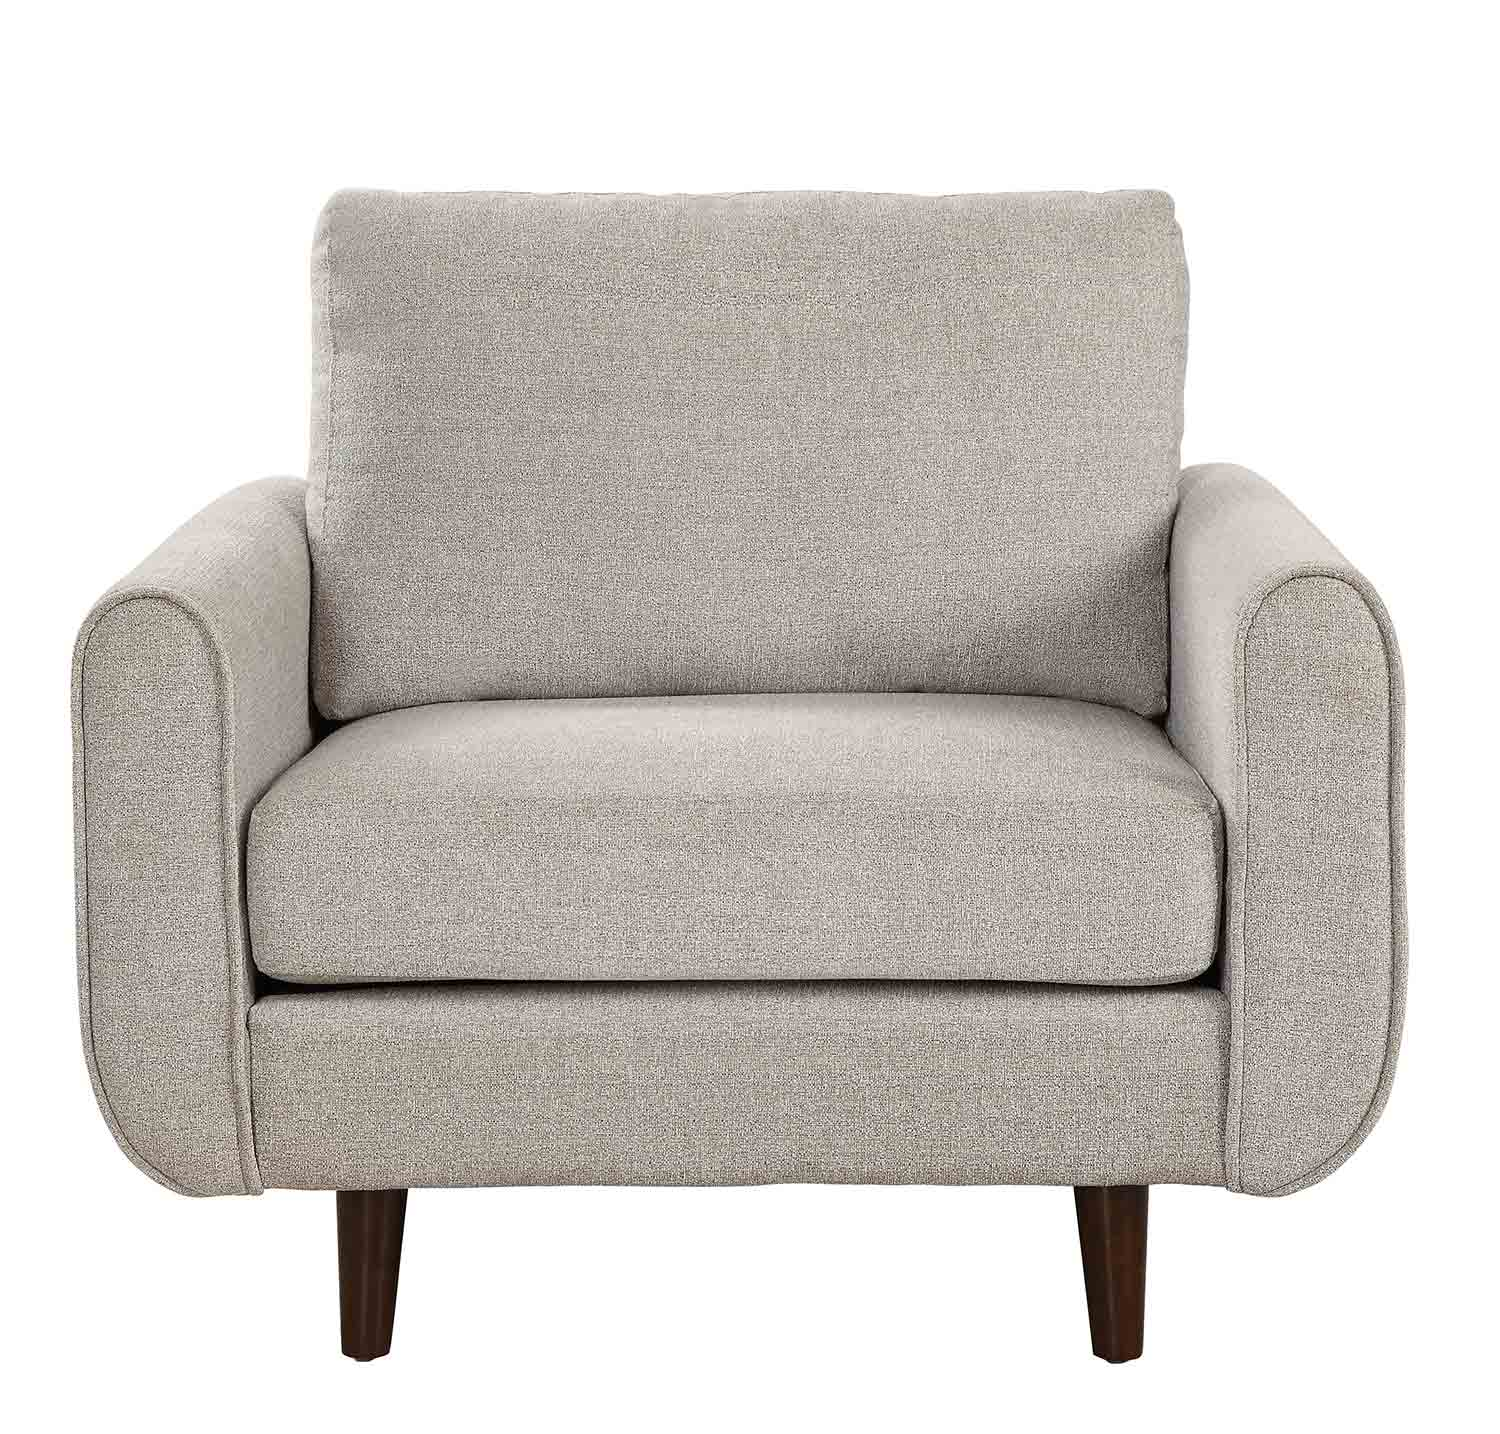 Homelegance Wrasse Chair - Sand Fabric